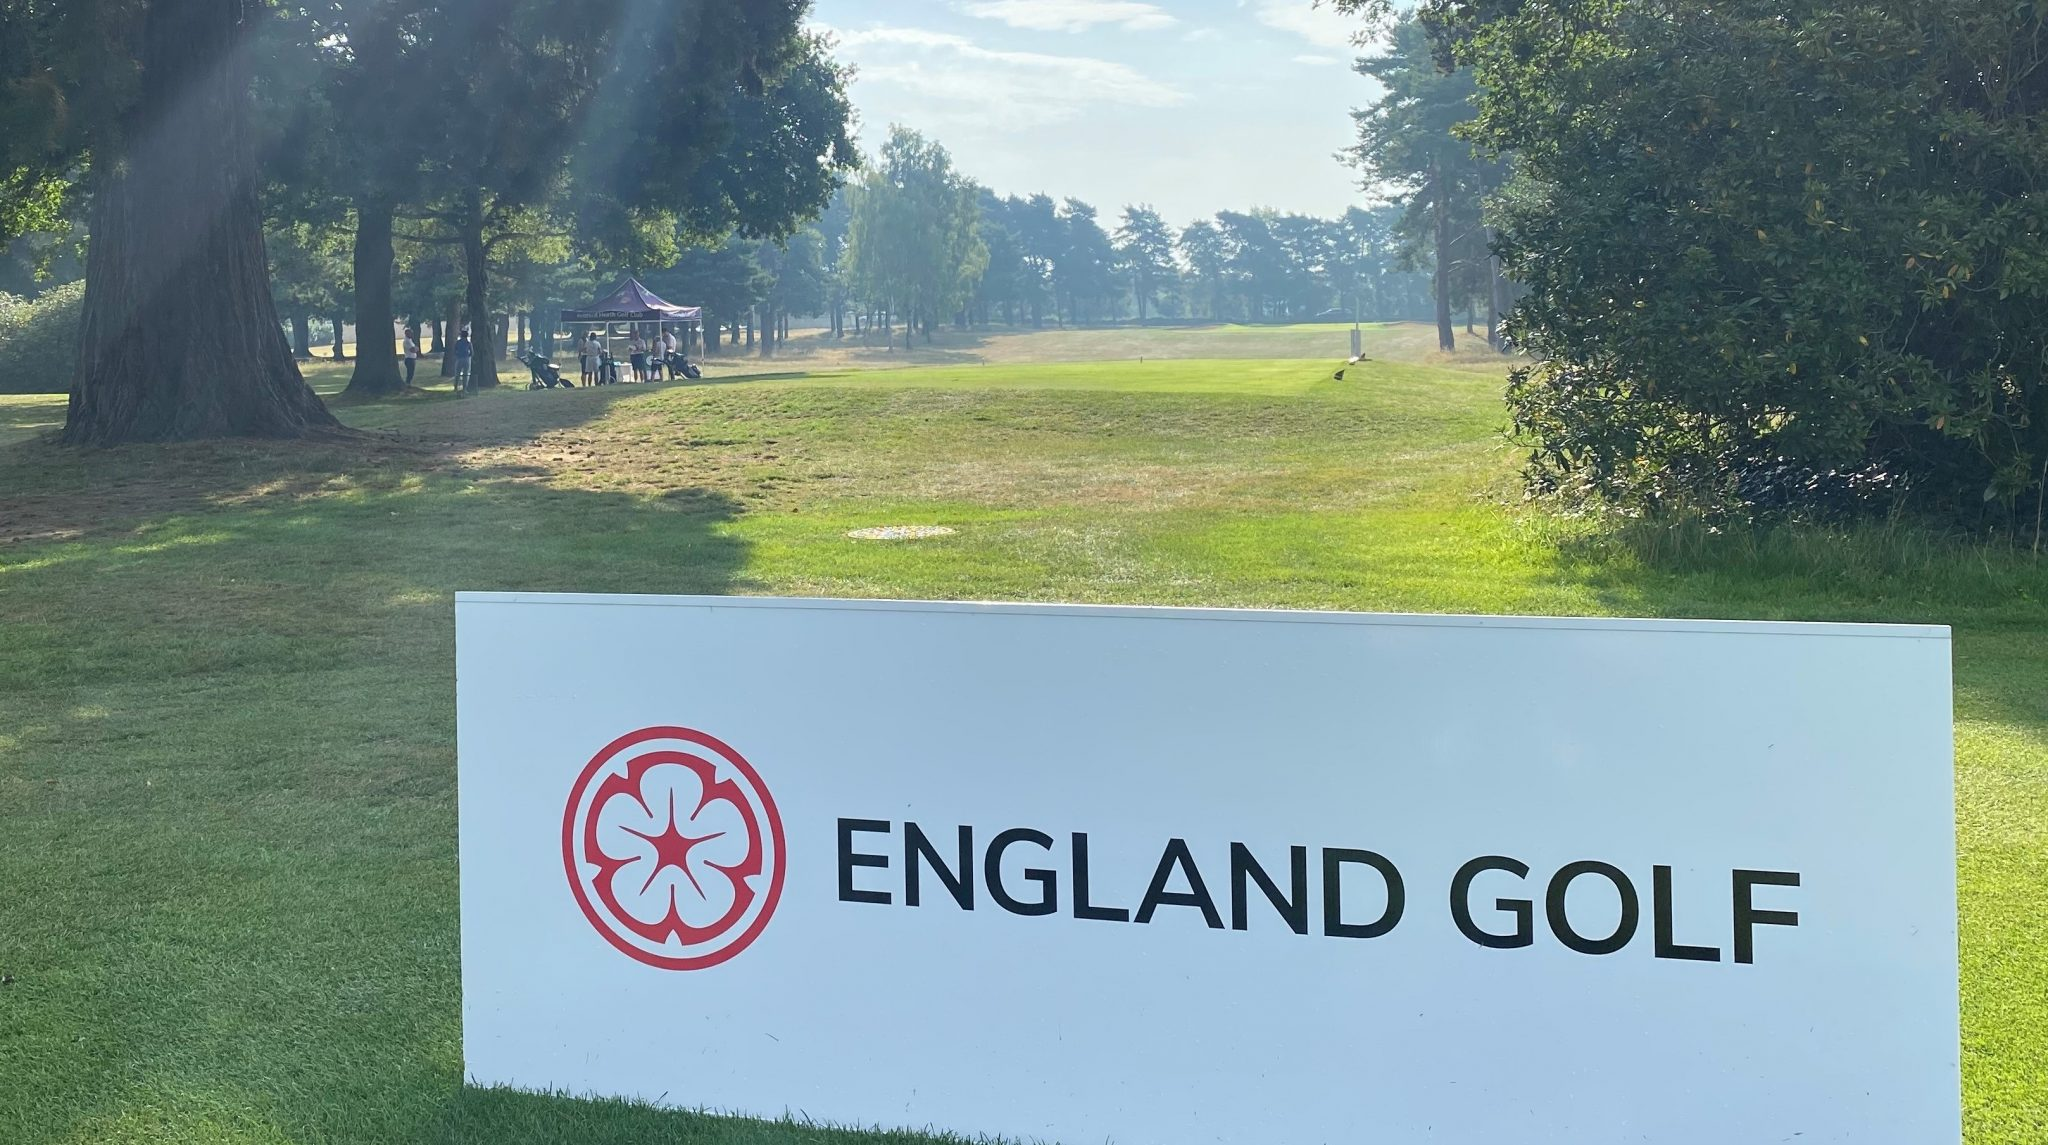 England Golf backs clubs with extra £500k investment in Covid-19 Support Fund